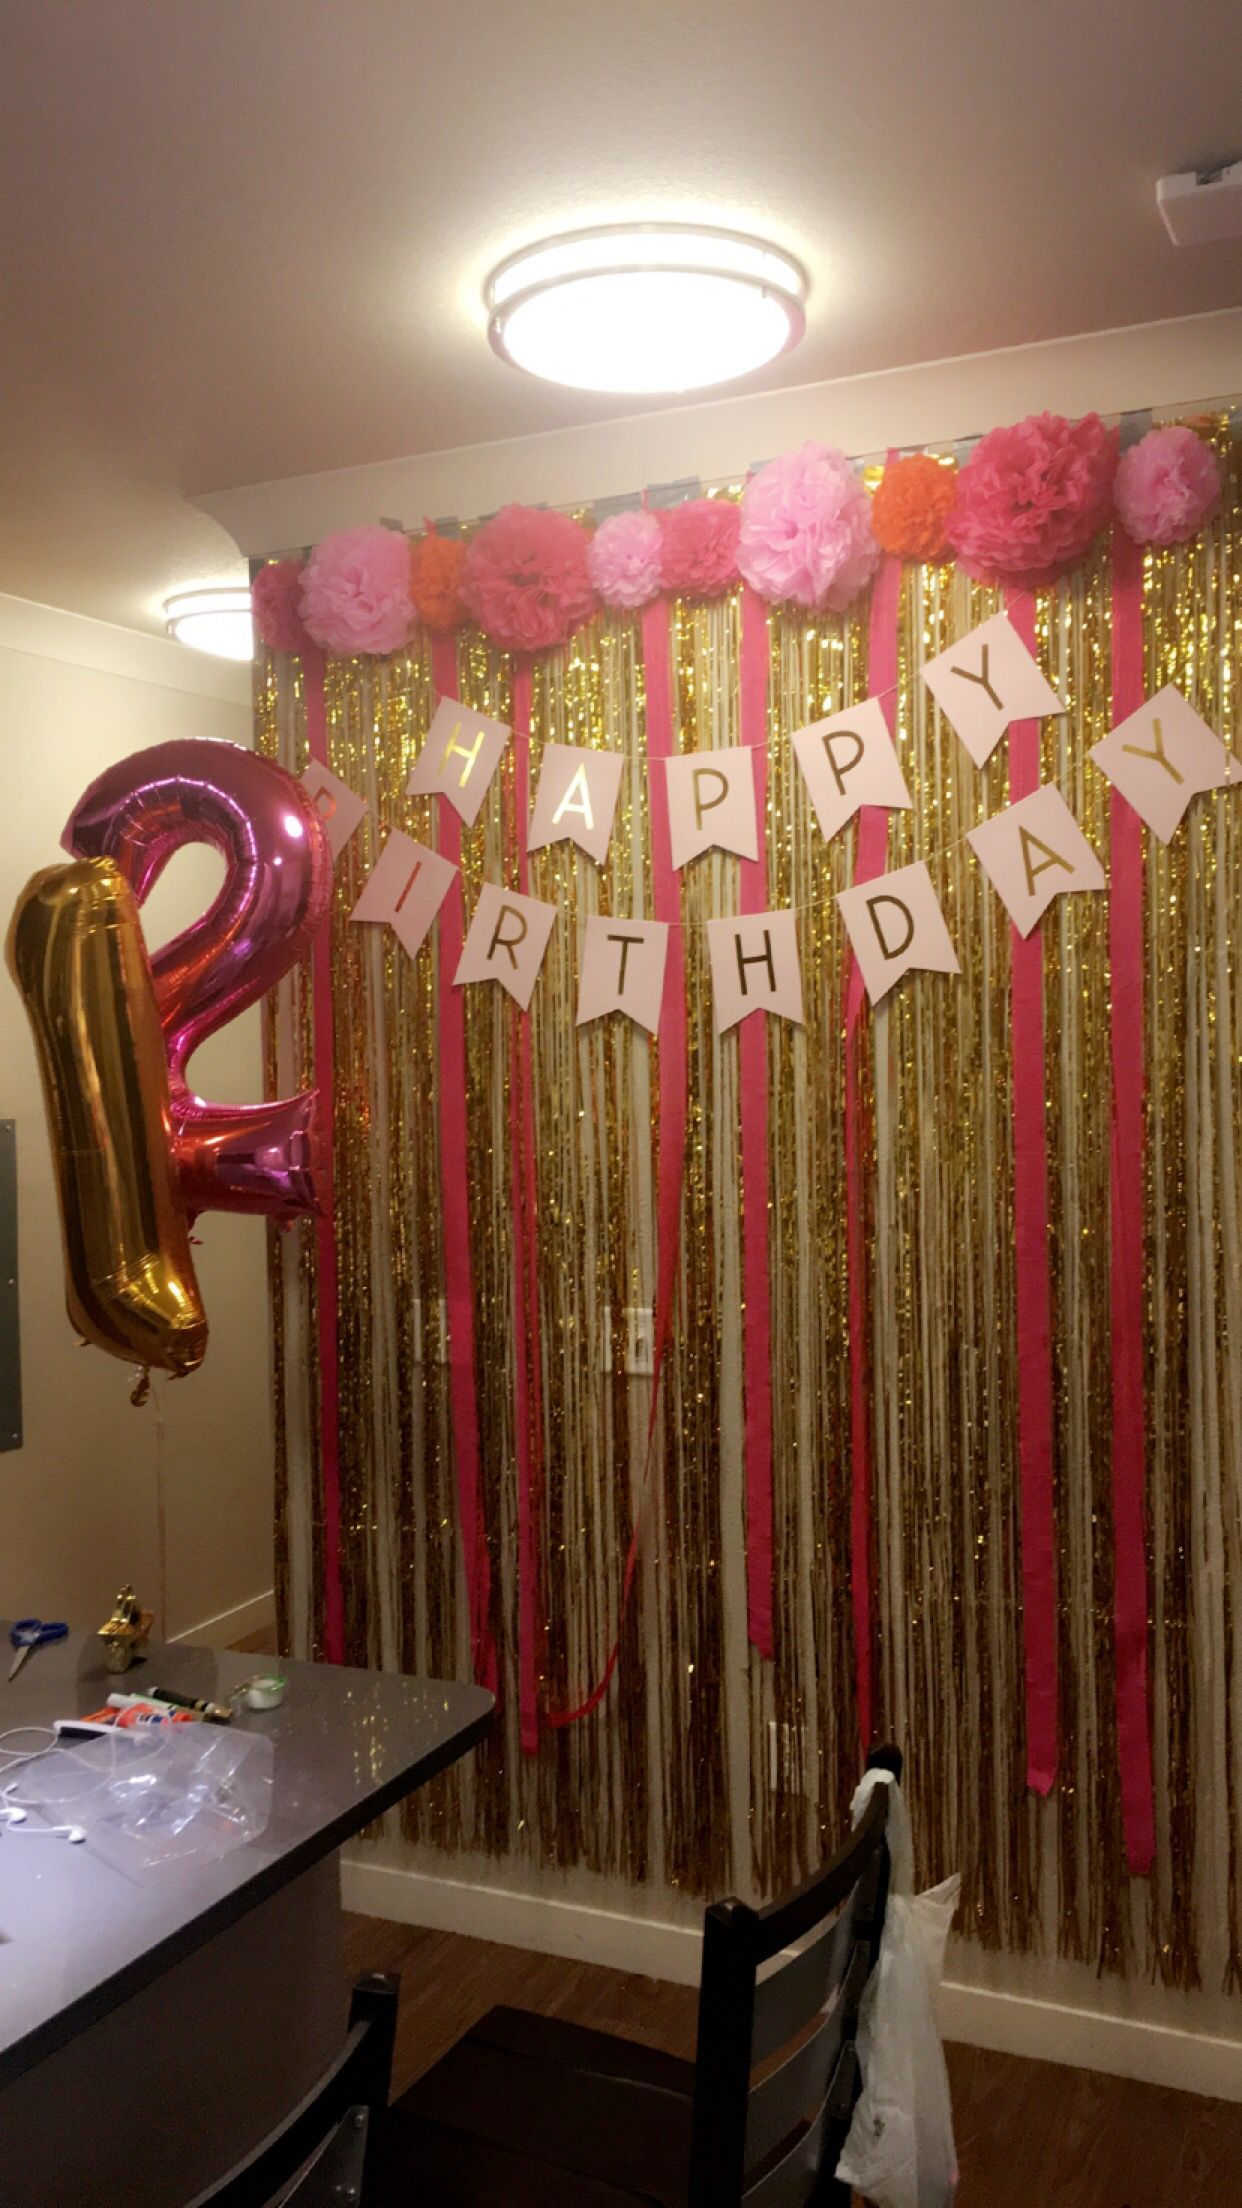 Hotel birthday parties th st crafts sign also pin by jessie lucky lat on theme ideas pinterest rh